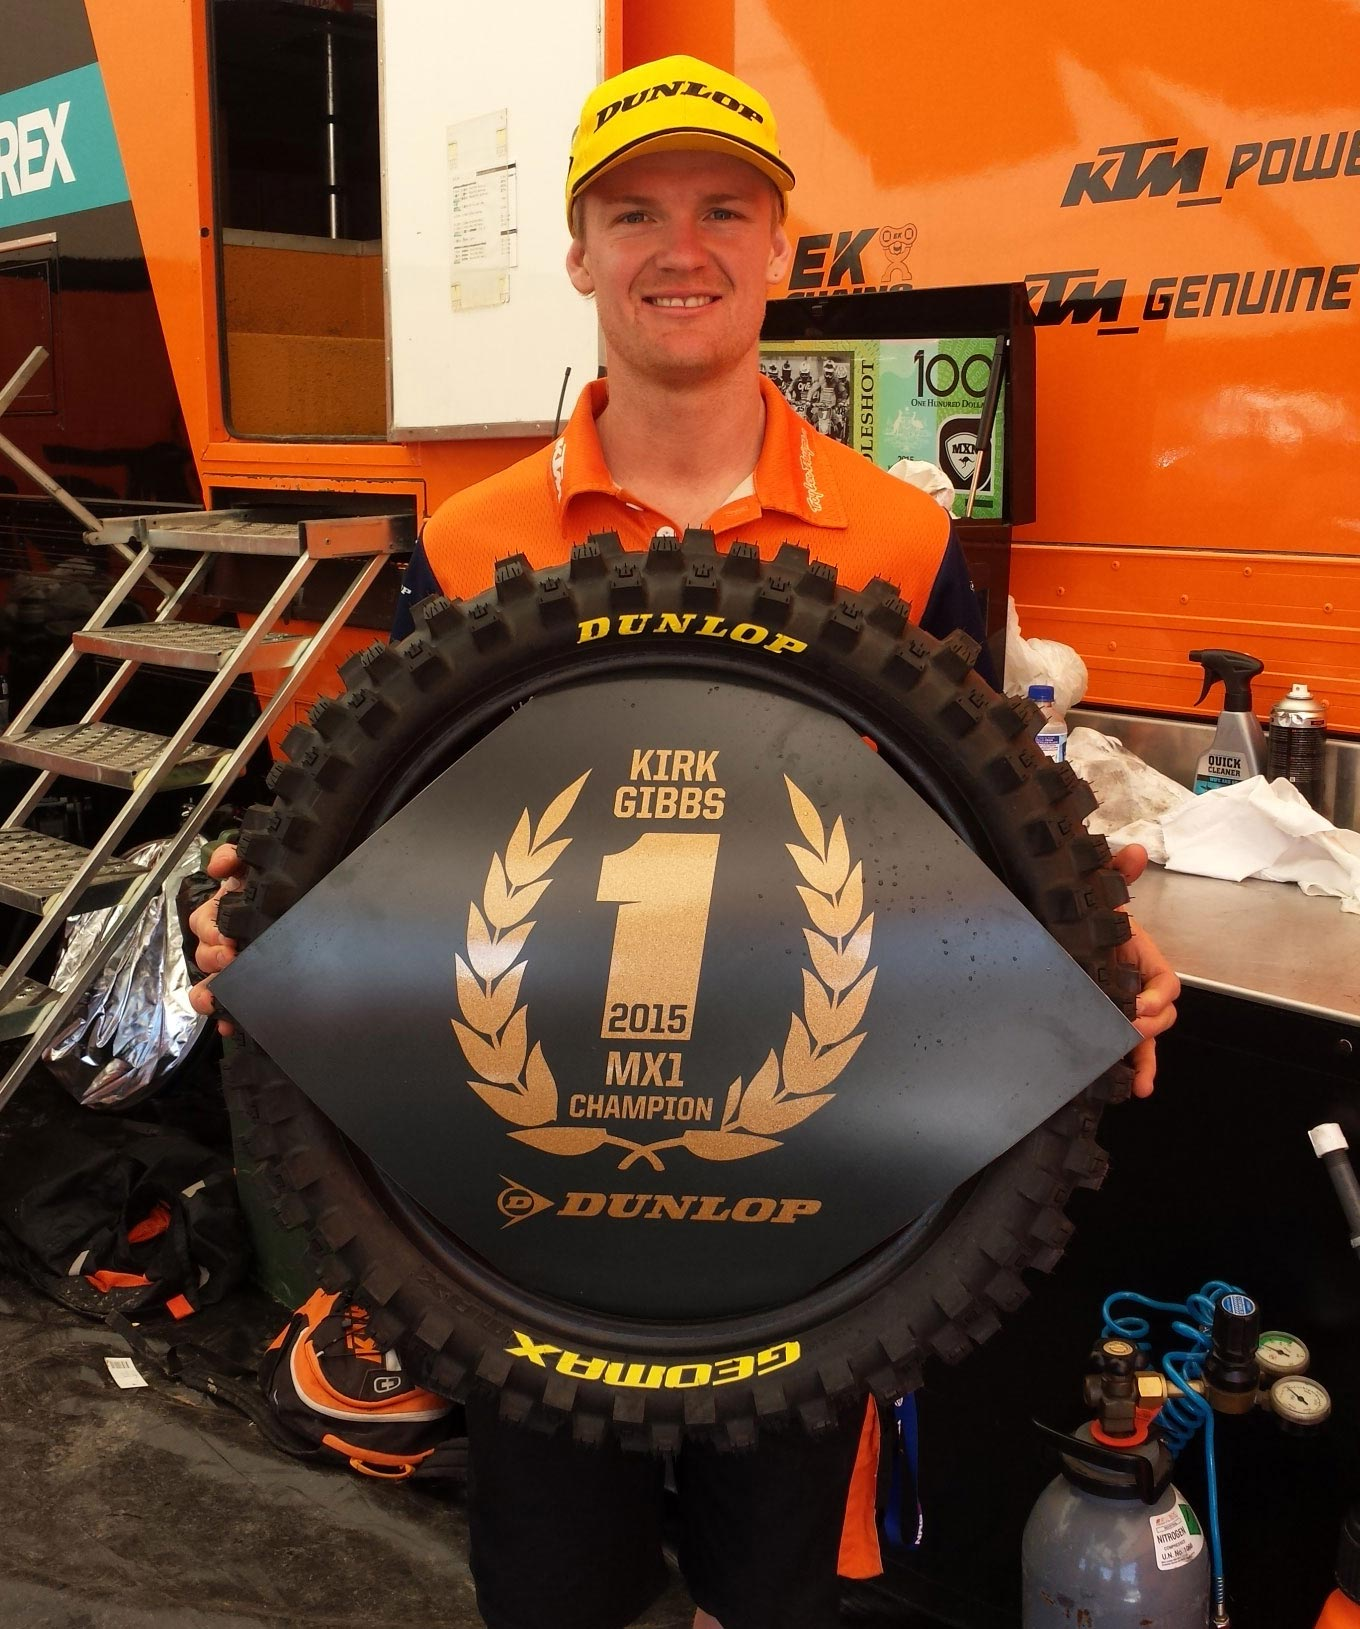 Kirk Gibbs won the 2015 MX Nationals MX1 Championship on Dunlop Geomax